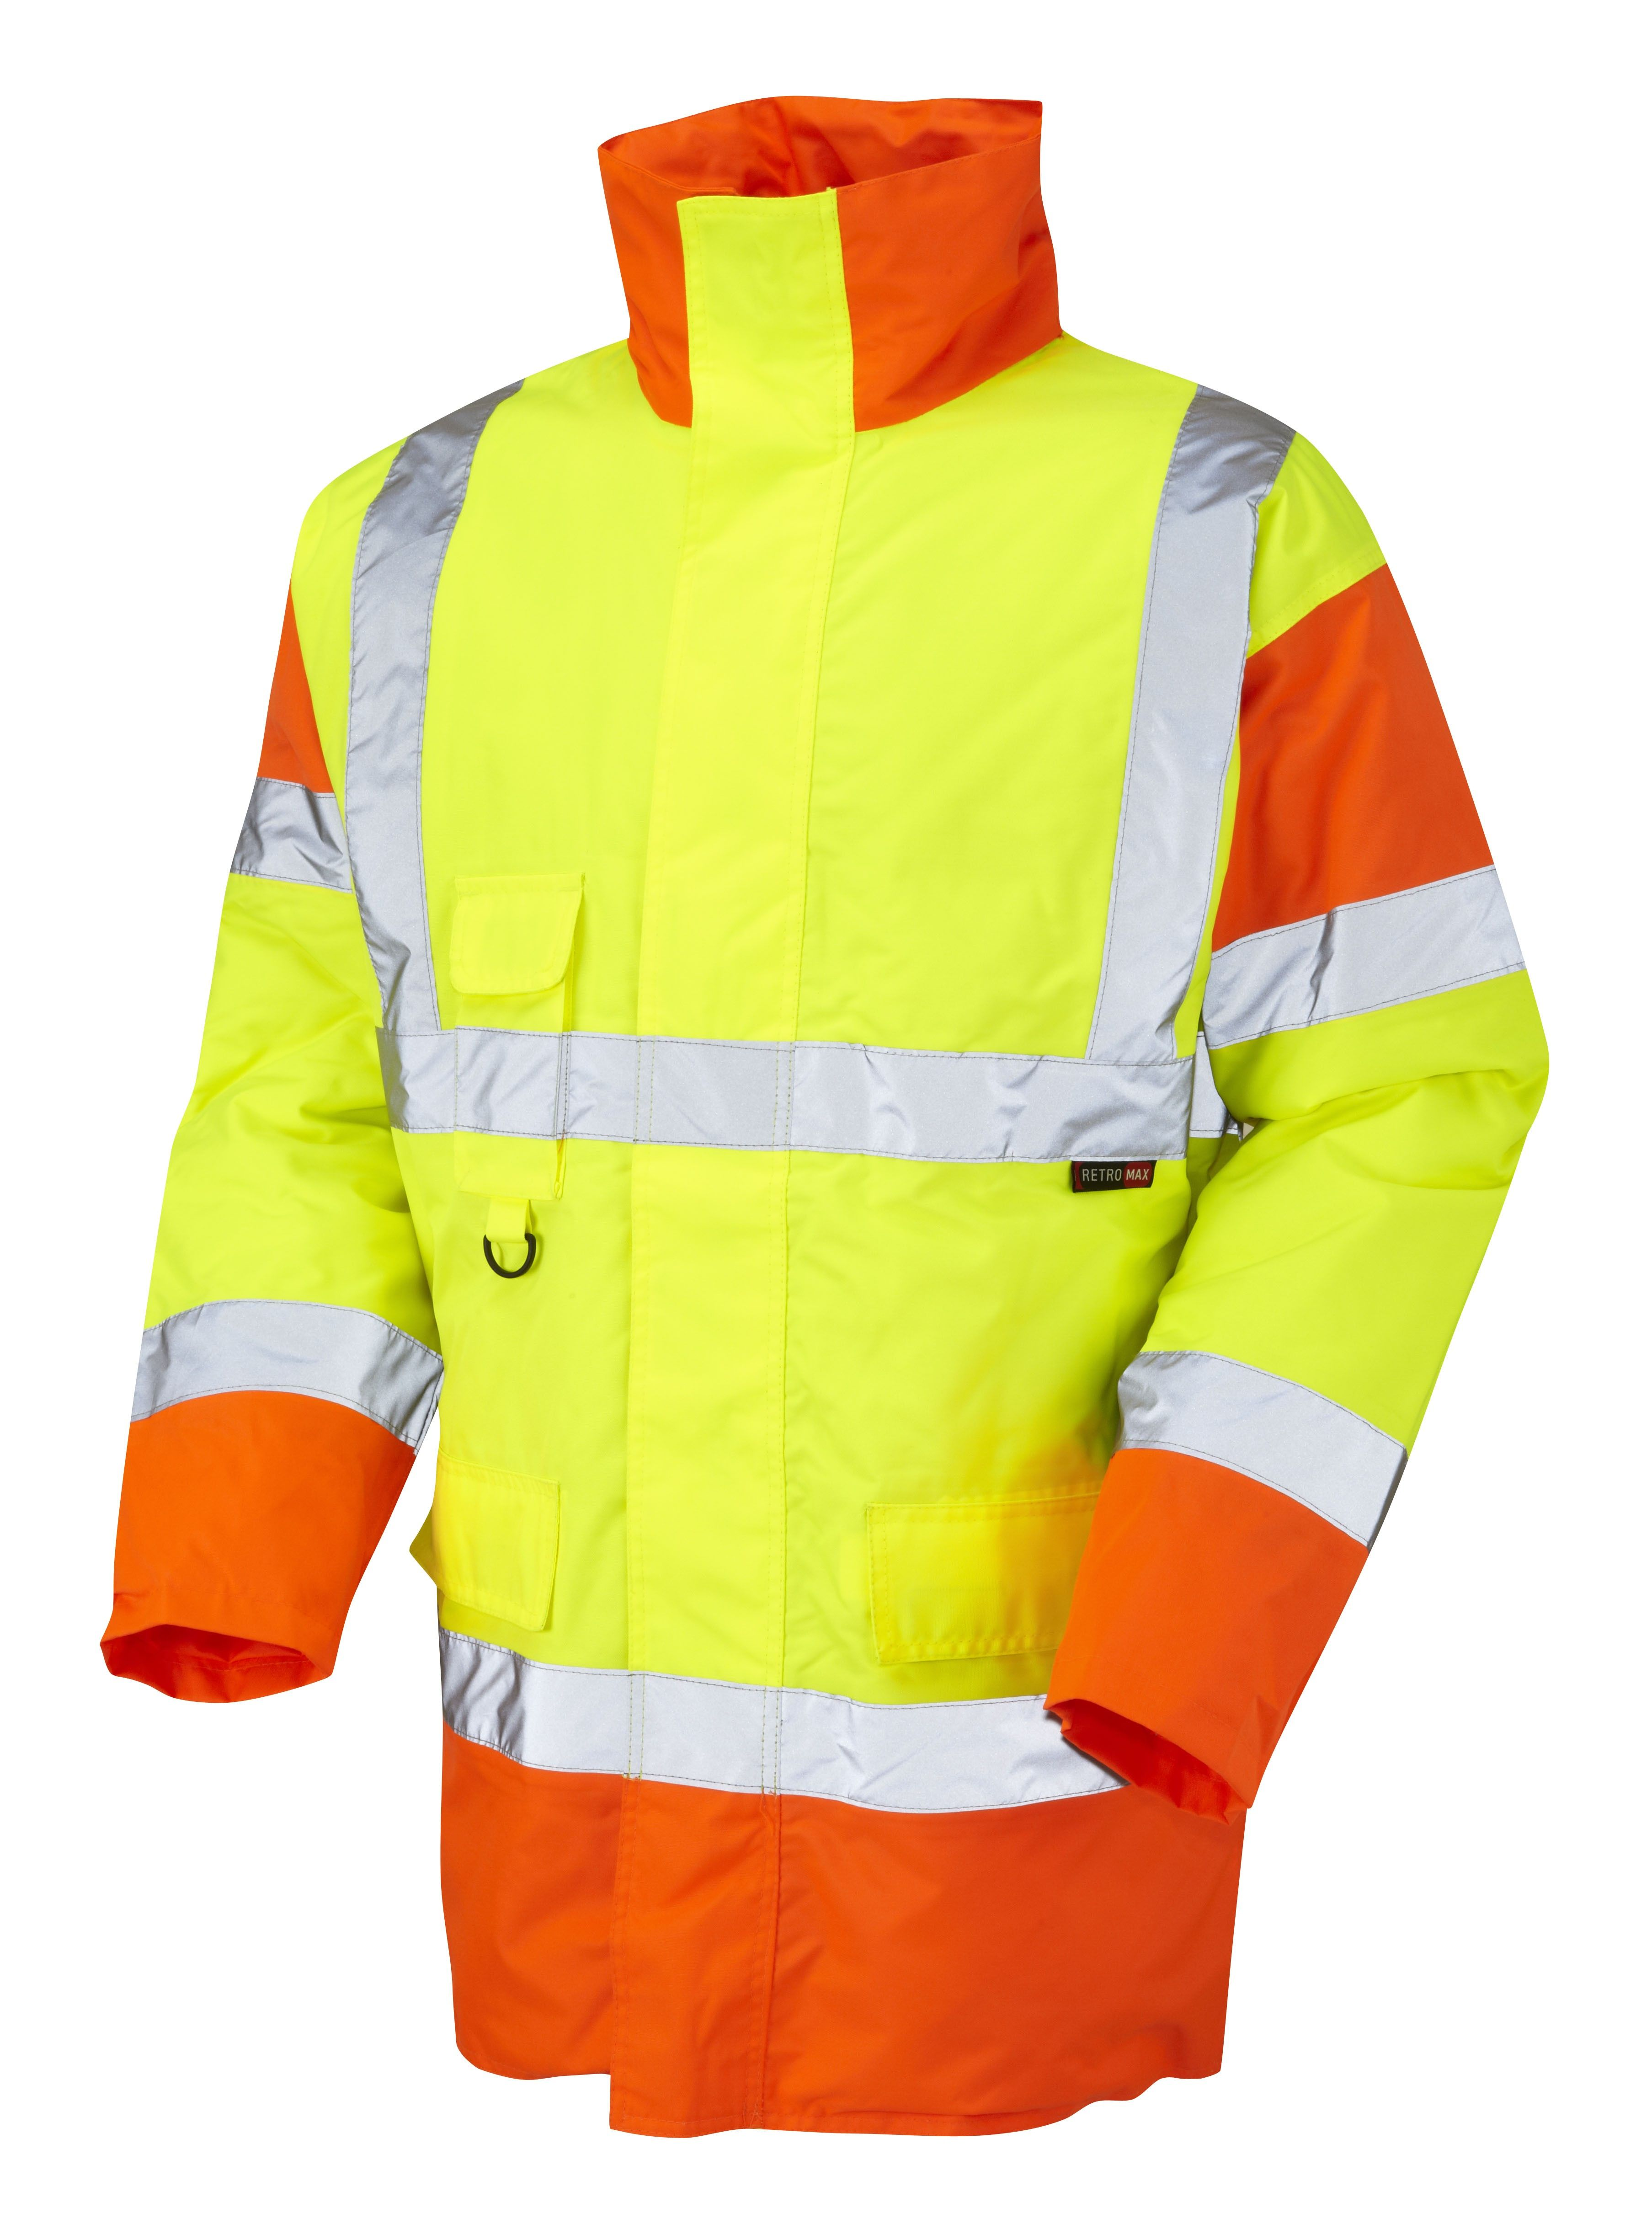 Iso 20471 class 3 hi vis safety ppe basic anorak 2xl 3xl